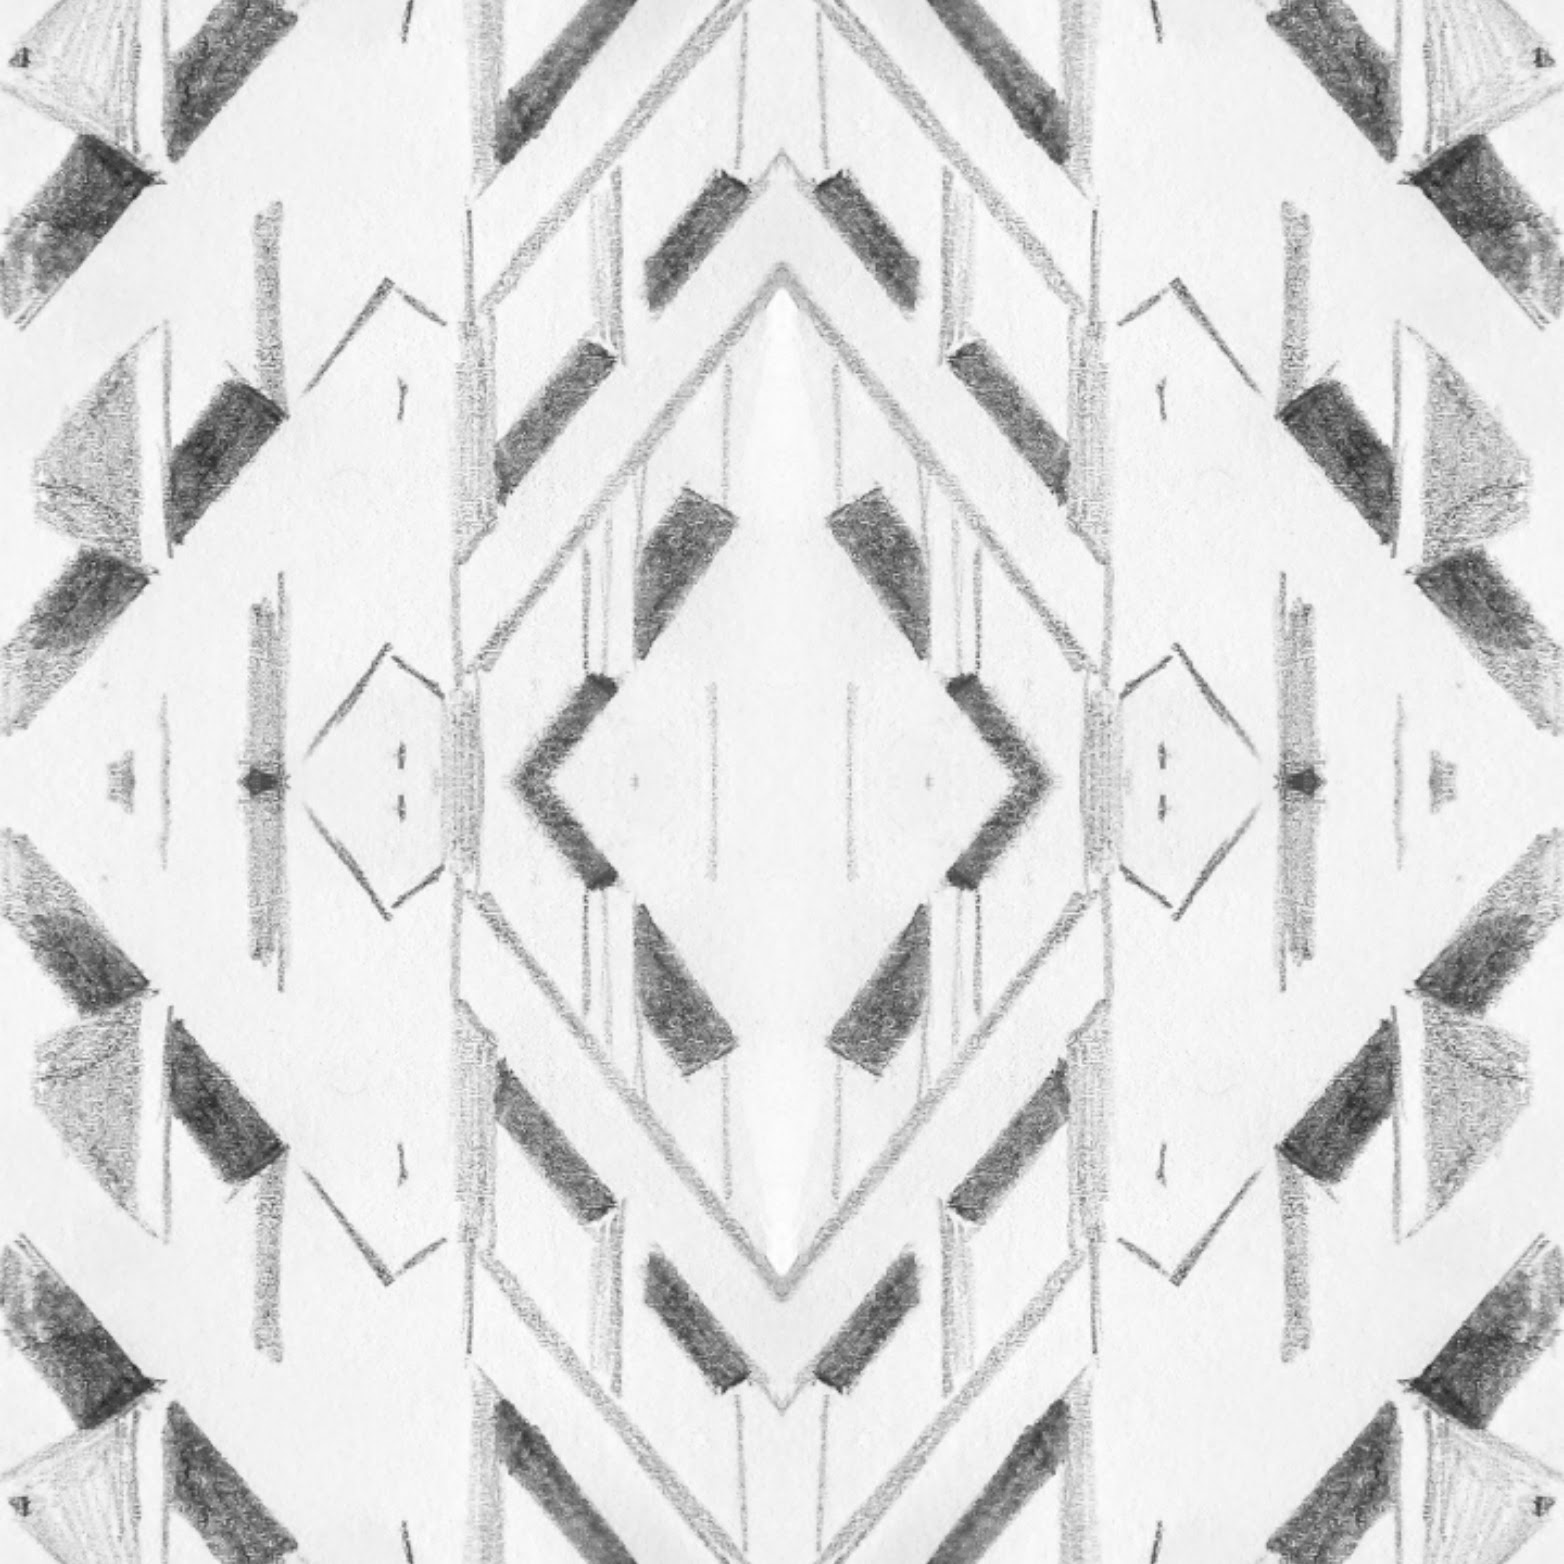 architectural pattern drawing 4 shape